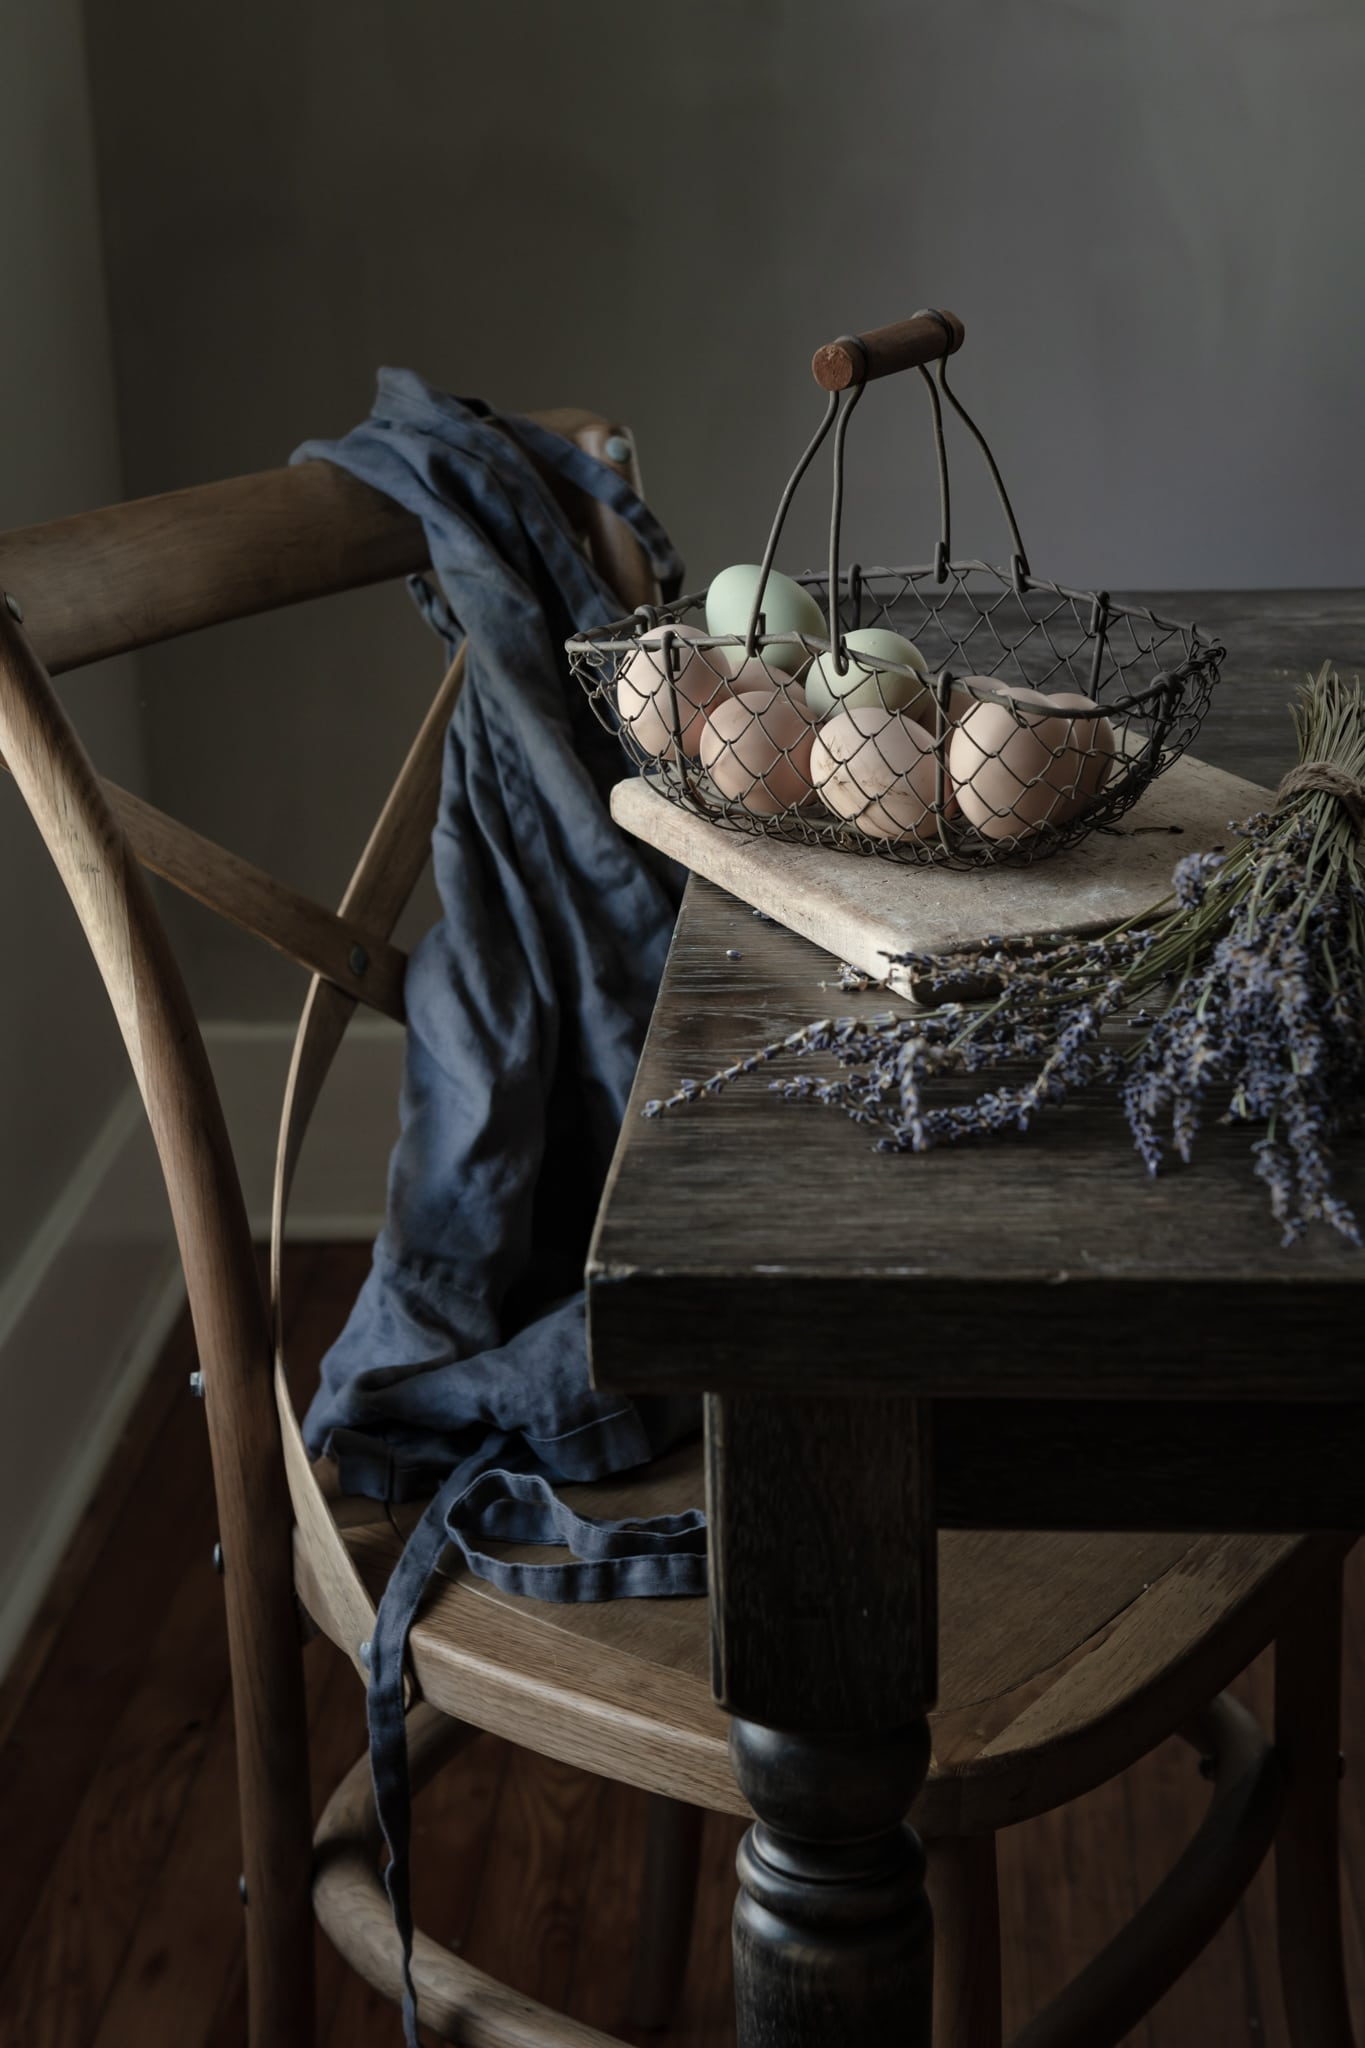 Spring colored eggs and fresh lavender on table.